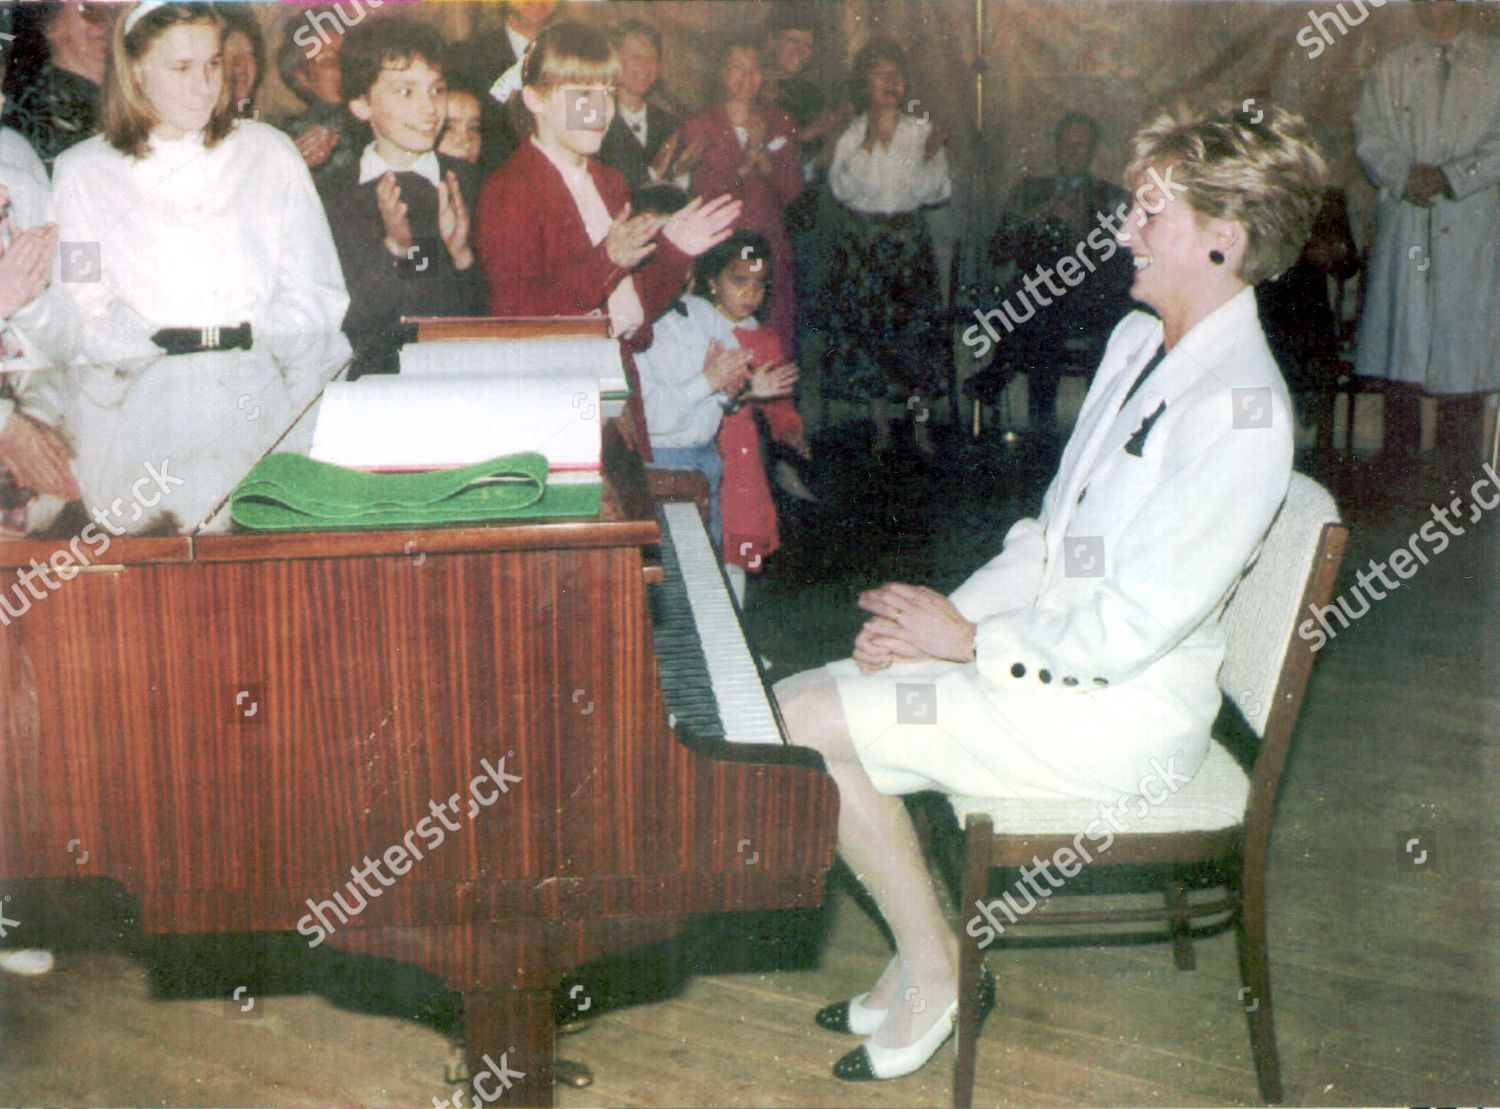 prince princess diana visit czechoslovakia may 1991 editorial stock photo stock image shutterstock https www shutterstock com editorial image editorial prince and diana princess of wales visit to czechoslovakia may 1991princess diana playing the piano note perfect she was not but the princess of wales in concert albeit briefly delighted a young audience in prague yesterdaythe princess of wa 1106239a